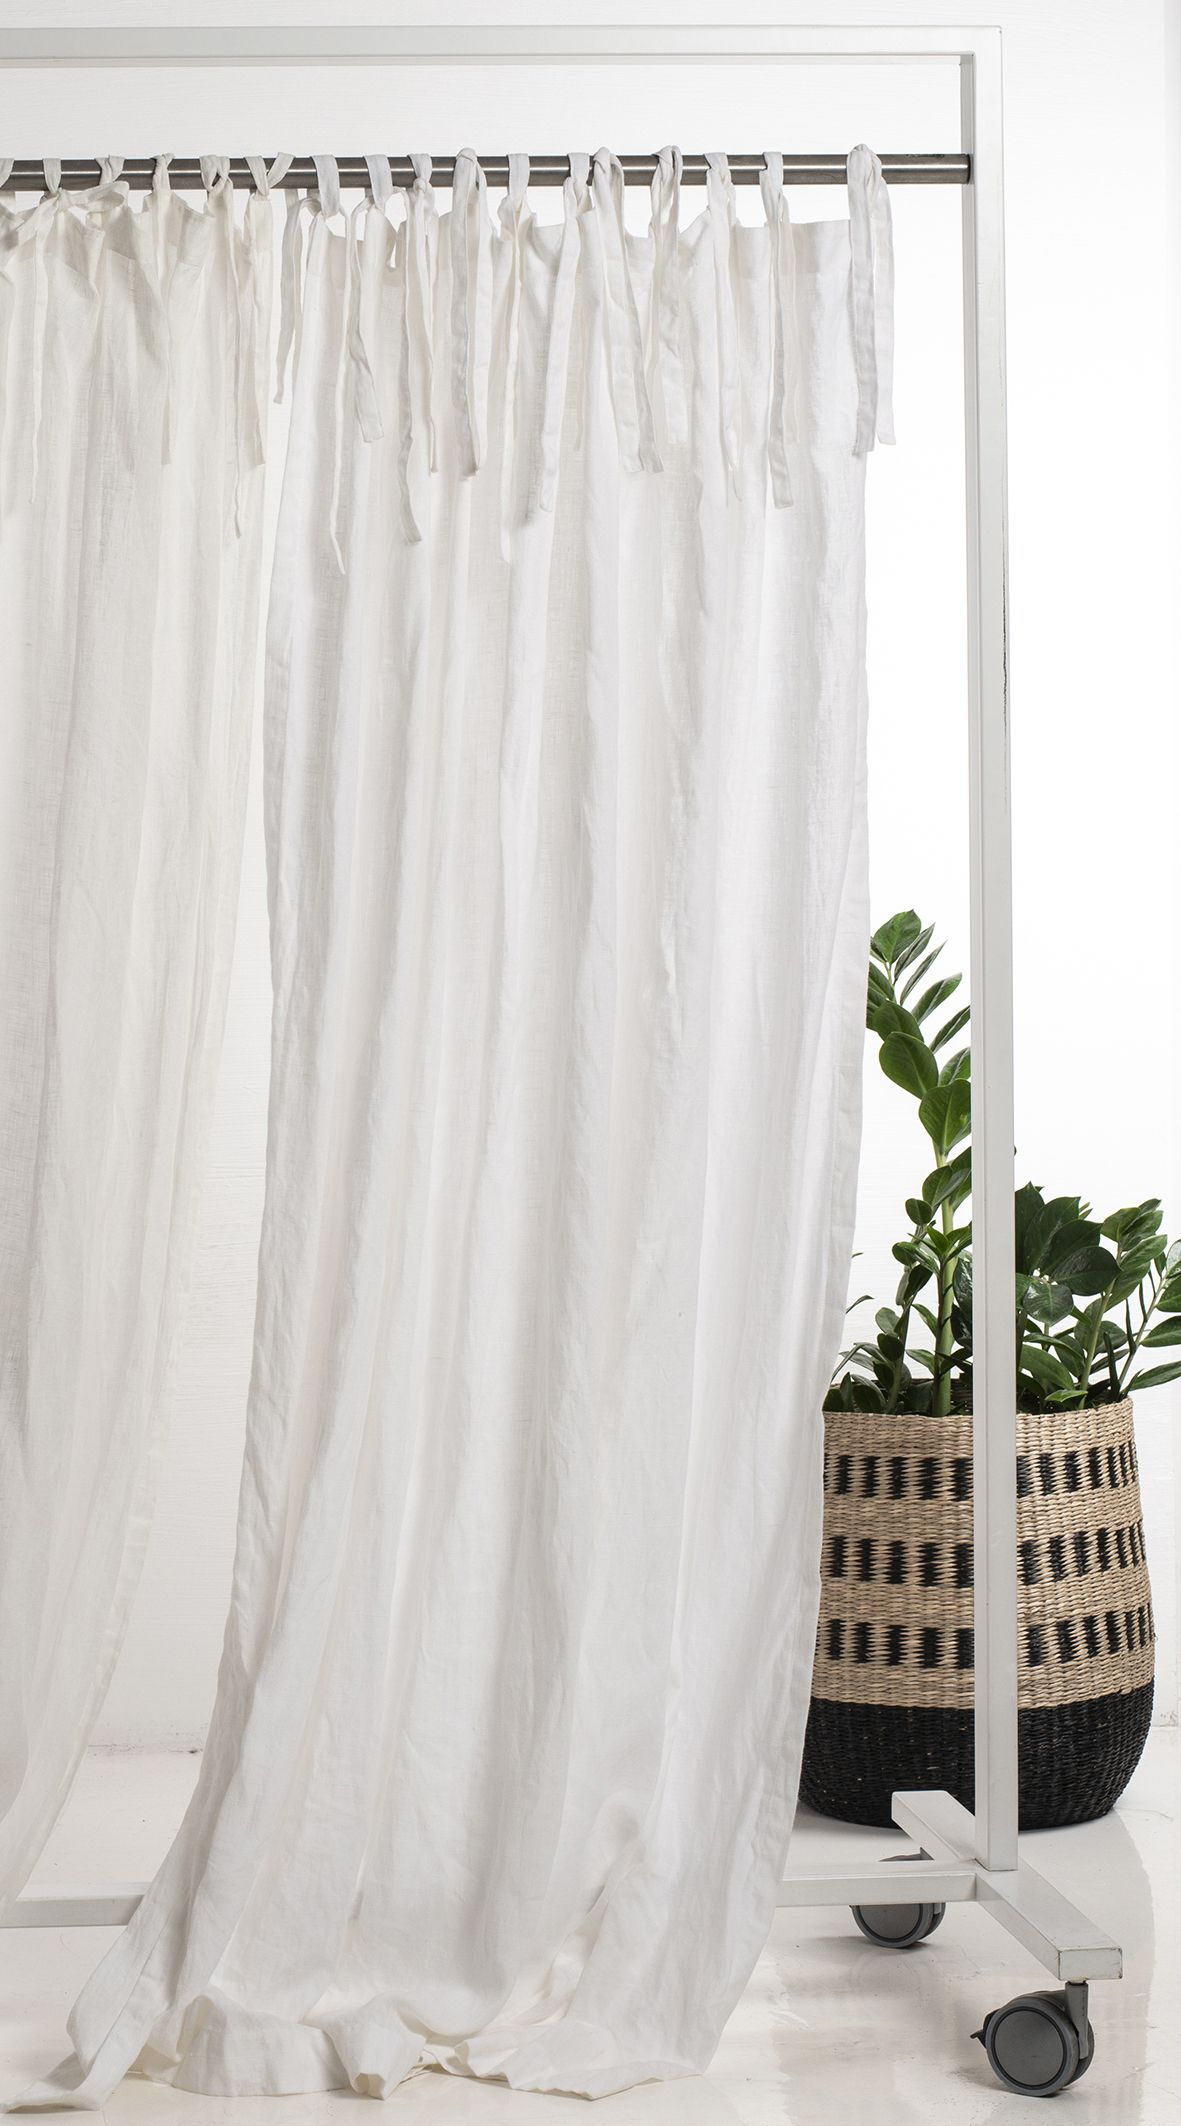 White linen curtains will add a sense of vitality and freshness to every interior